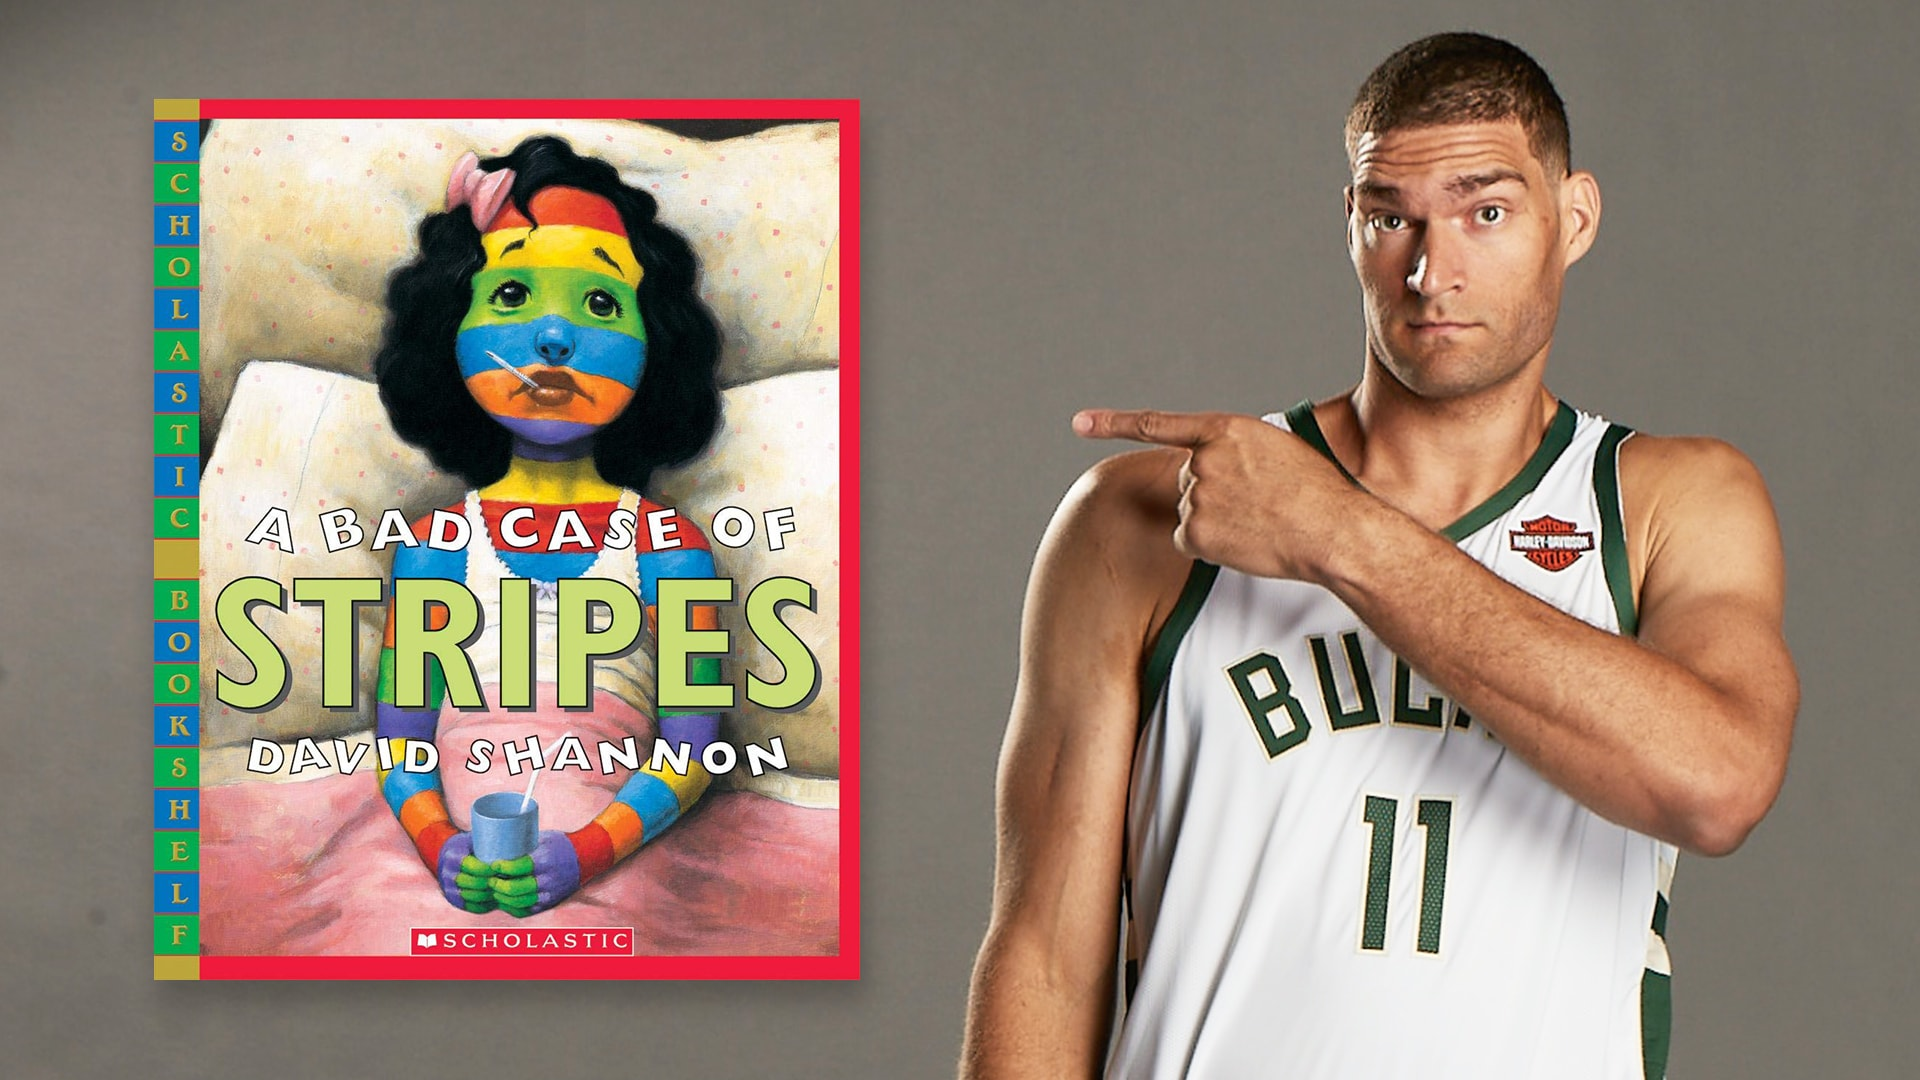 Storytime With Brook Lopez: A Bad Case of Stripes